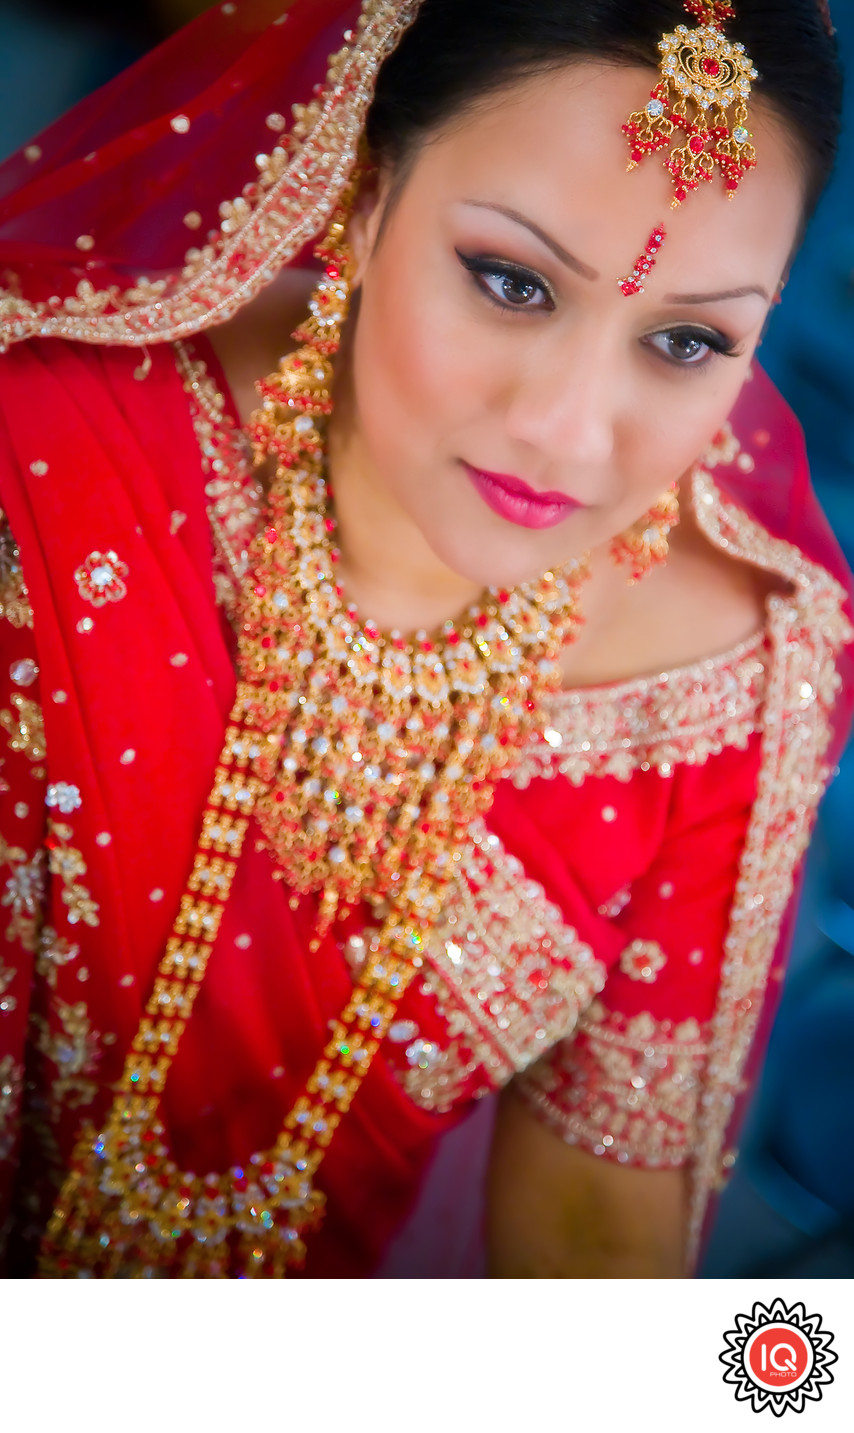 Formal Portrait of Indian Bride